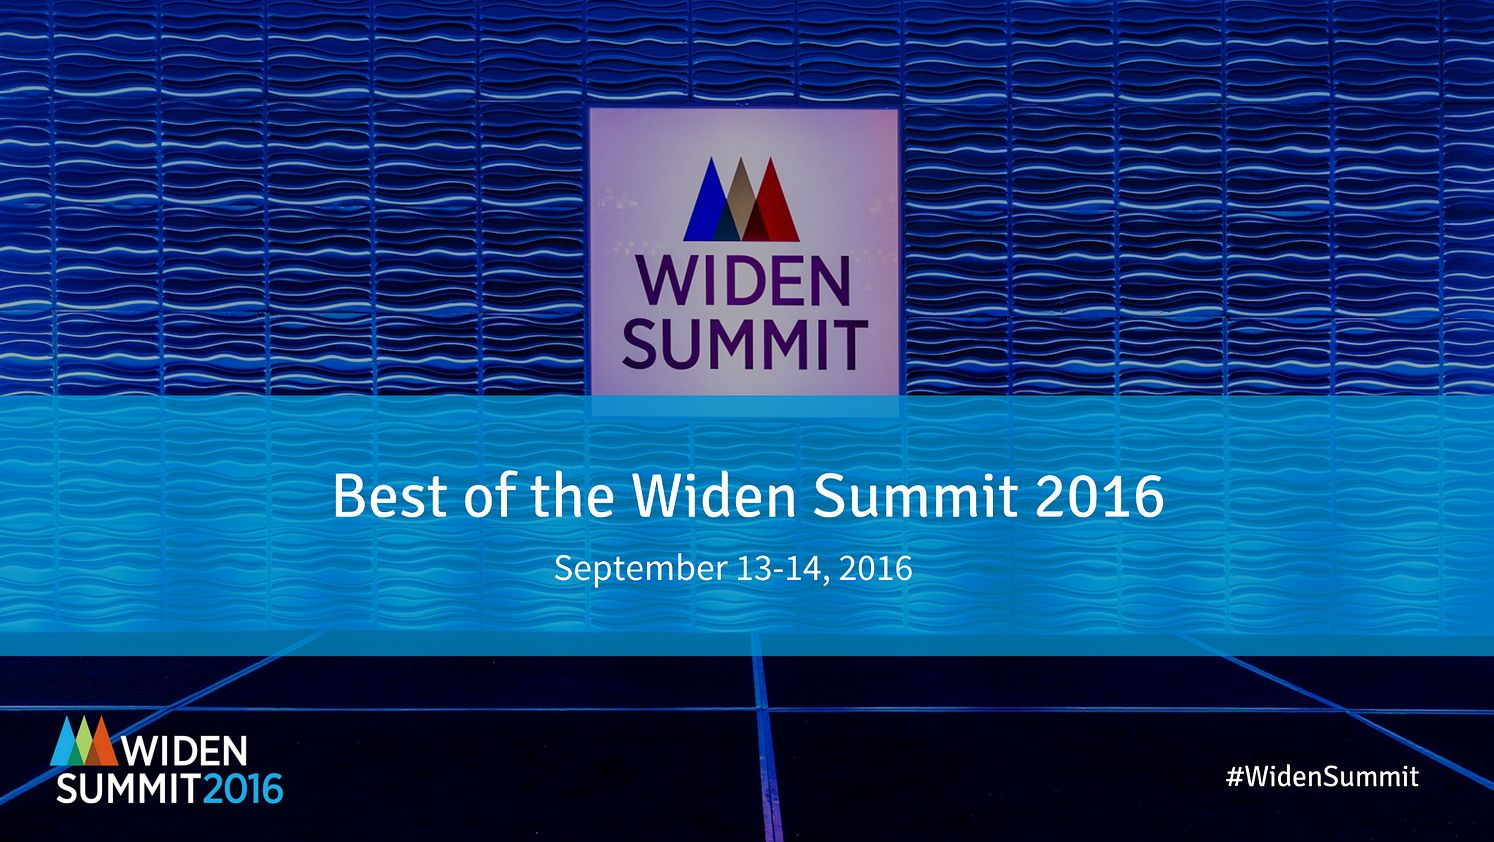 The Best of the 2016 Widen Summit